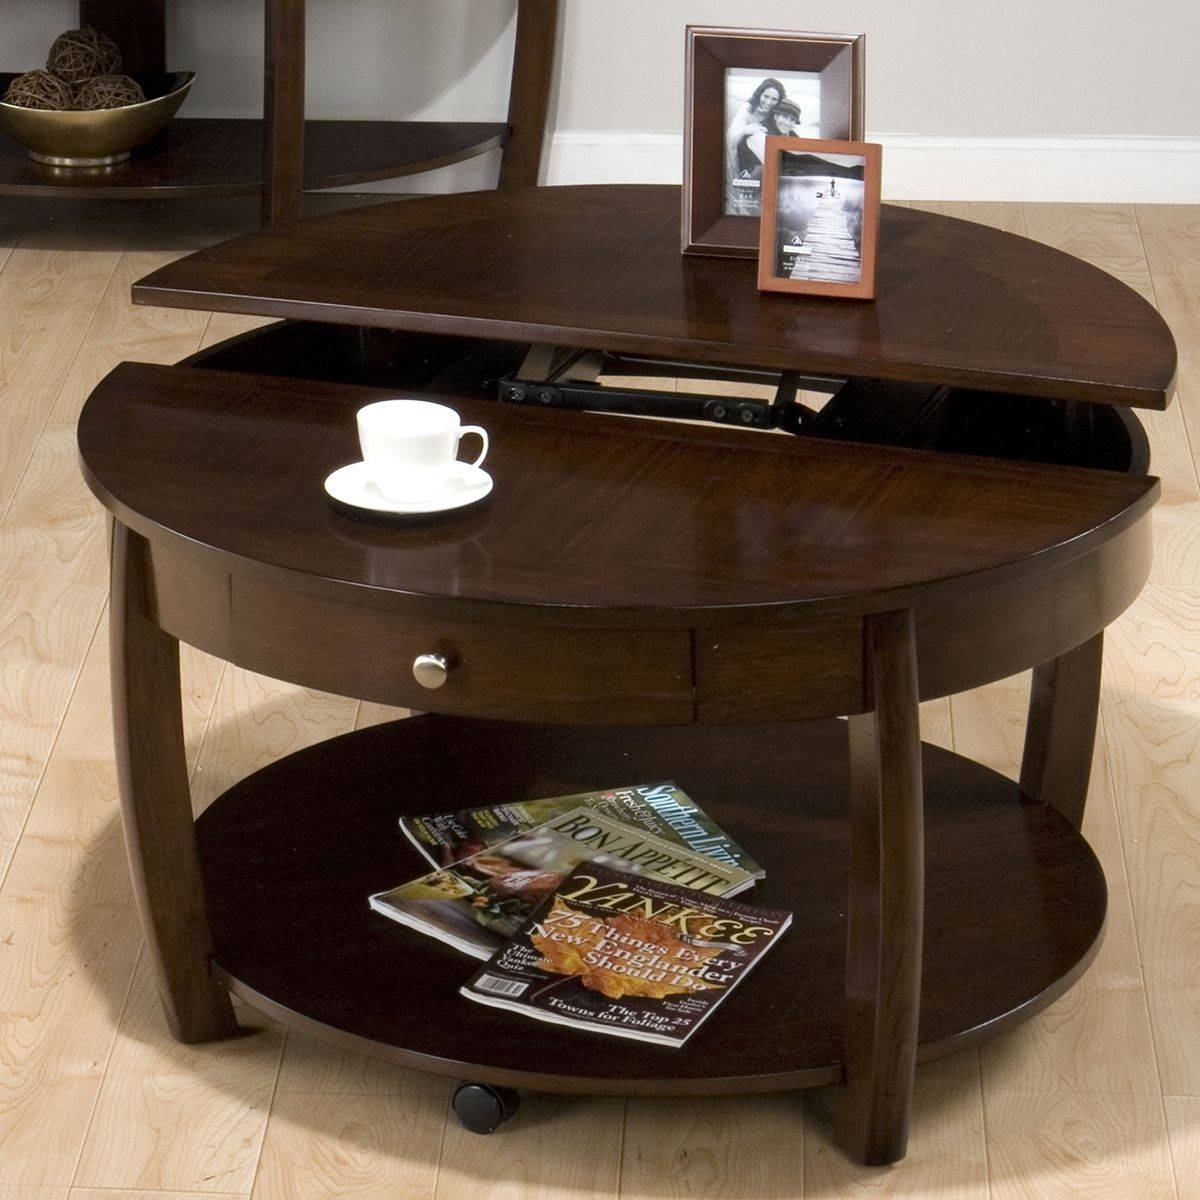 101 Best Images About Coffee Table On Pinterest | Center Table pertaining to Raisable Coffee Tables (Image 1 of 30)